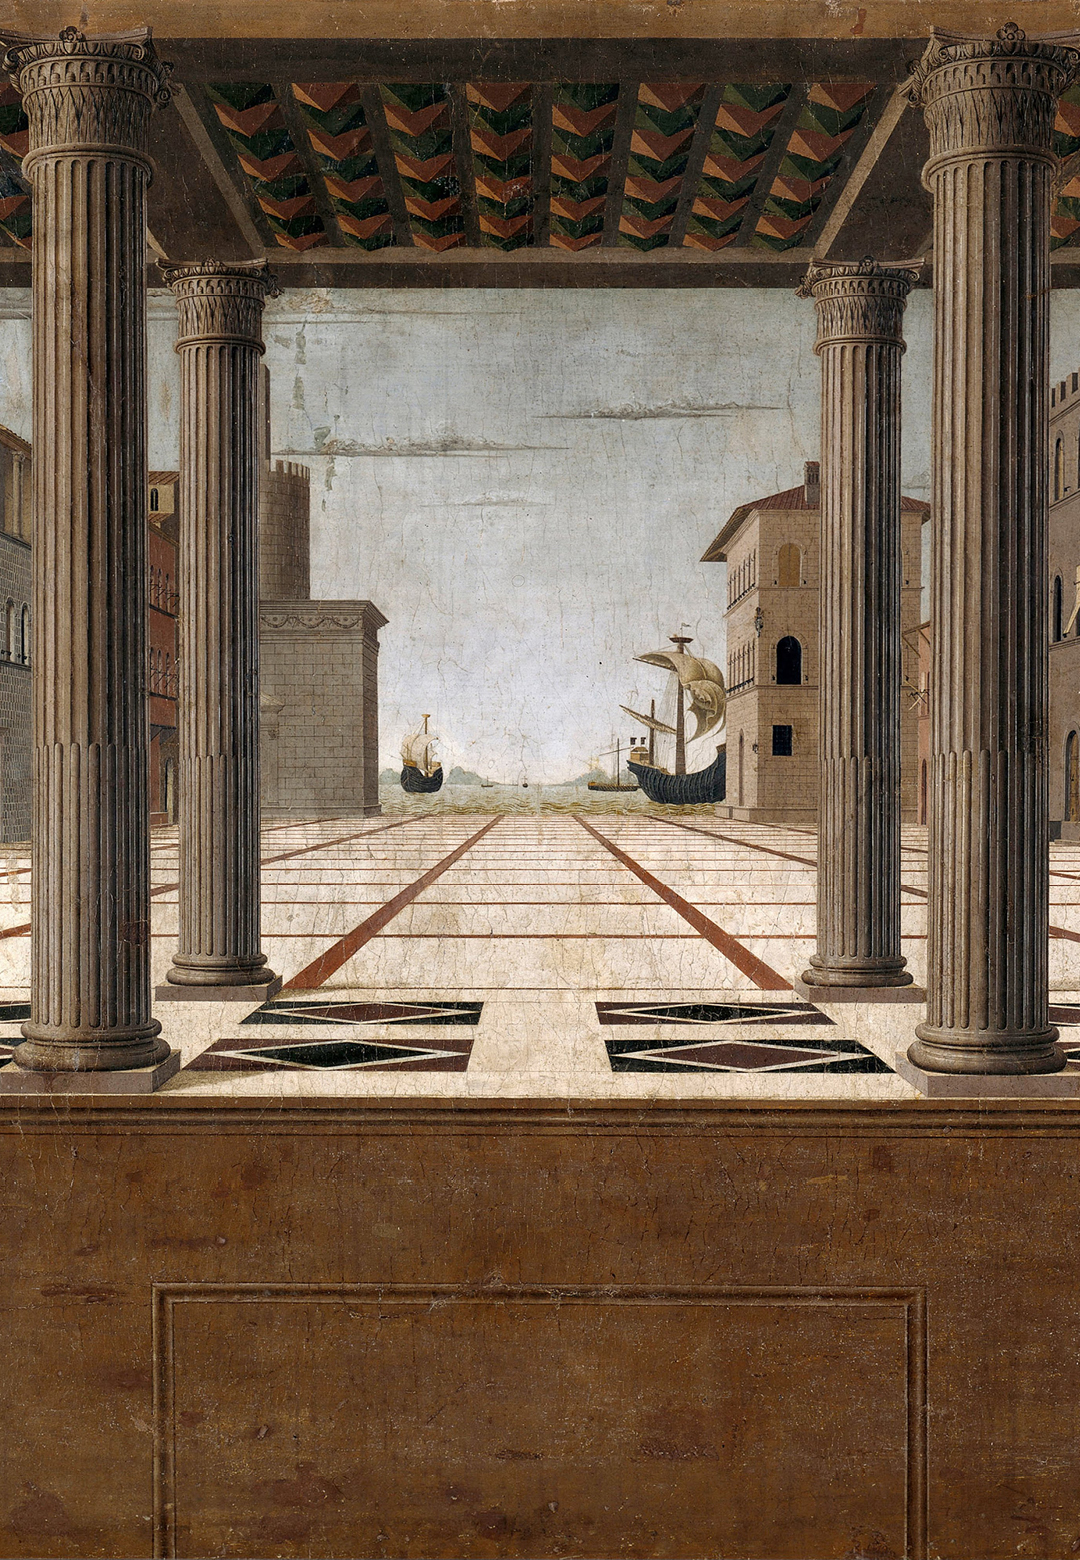 Architectural Veduta by Francesco di Giorgio Martini, 1490  | Human within the Architect | Prem Chandavarkar | STIR